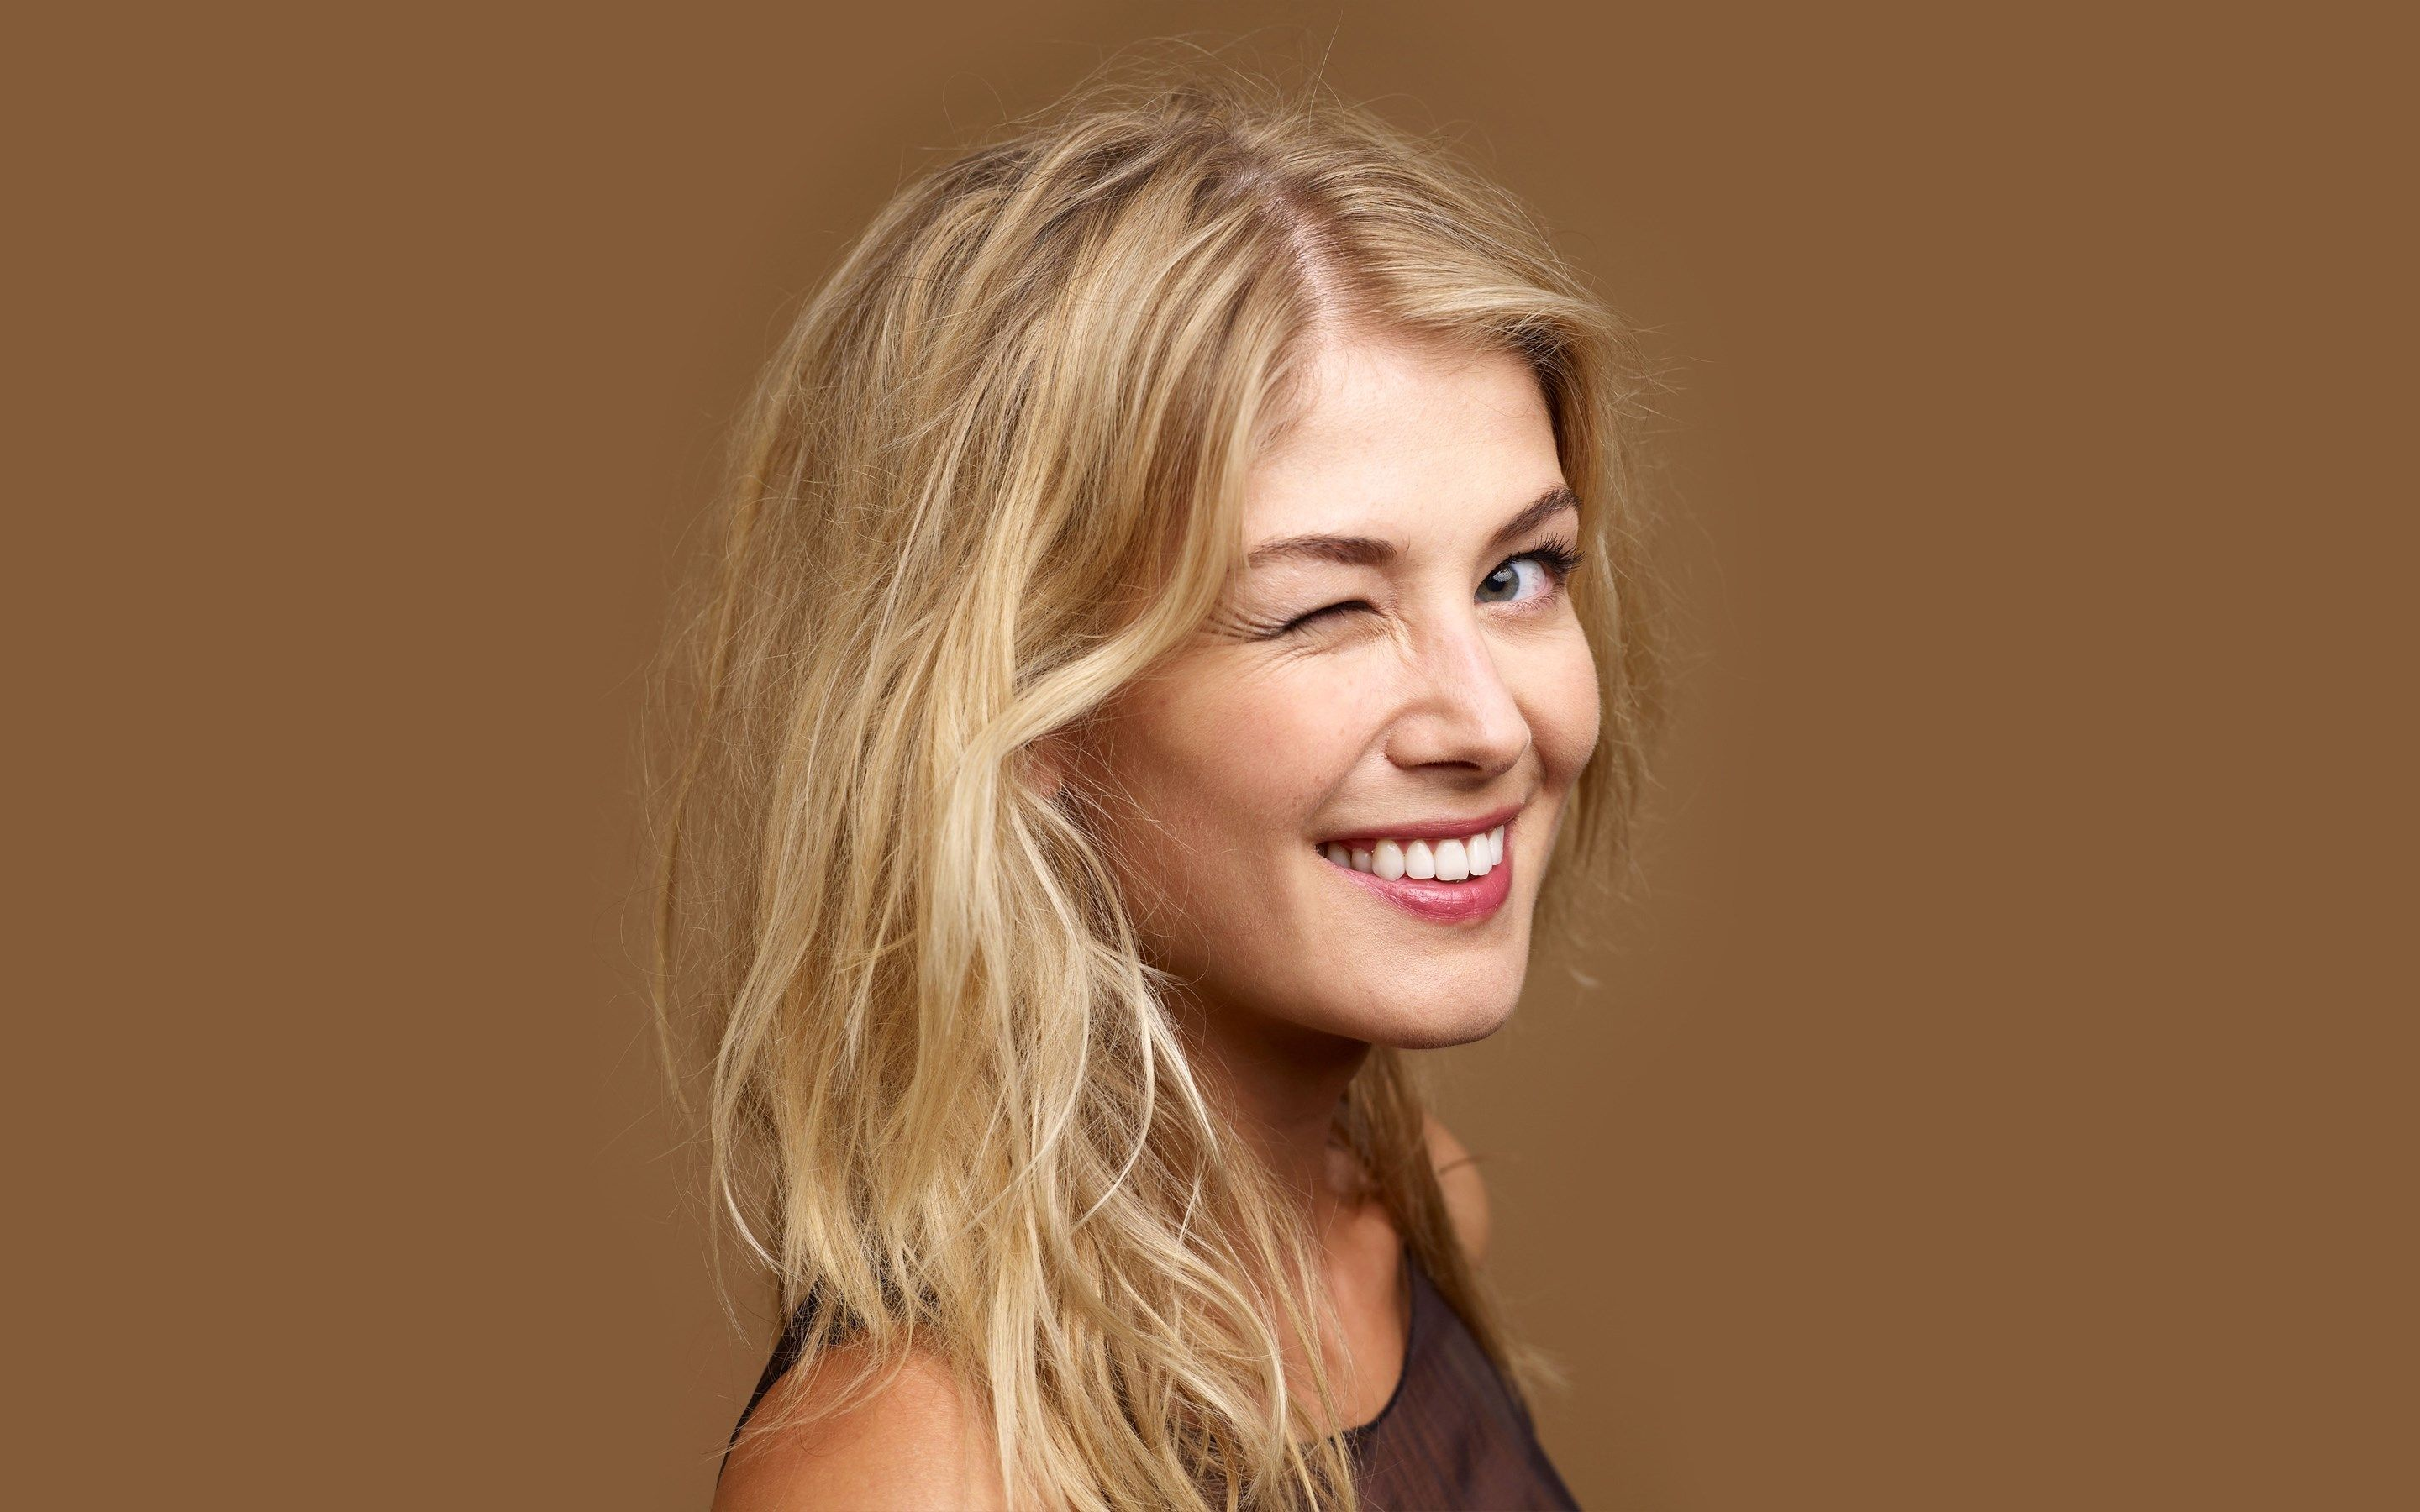 2880x1800 - Rosamund Pike Wallpapers 25